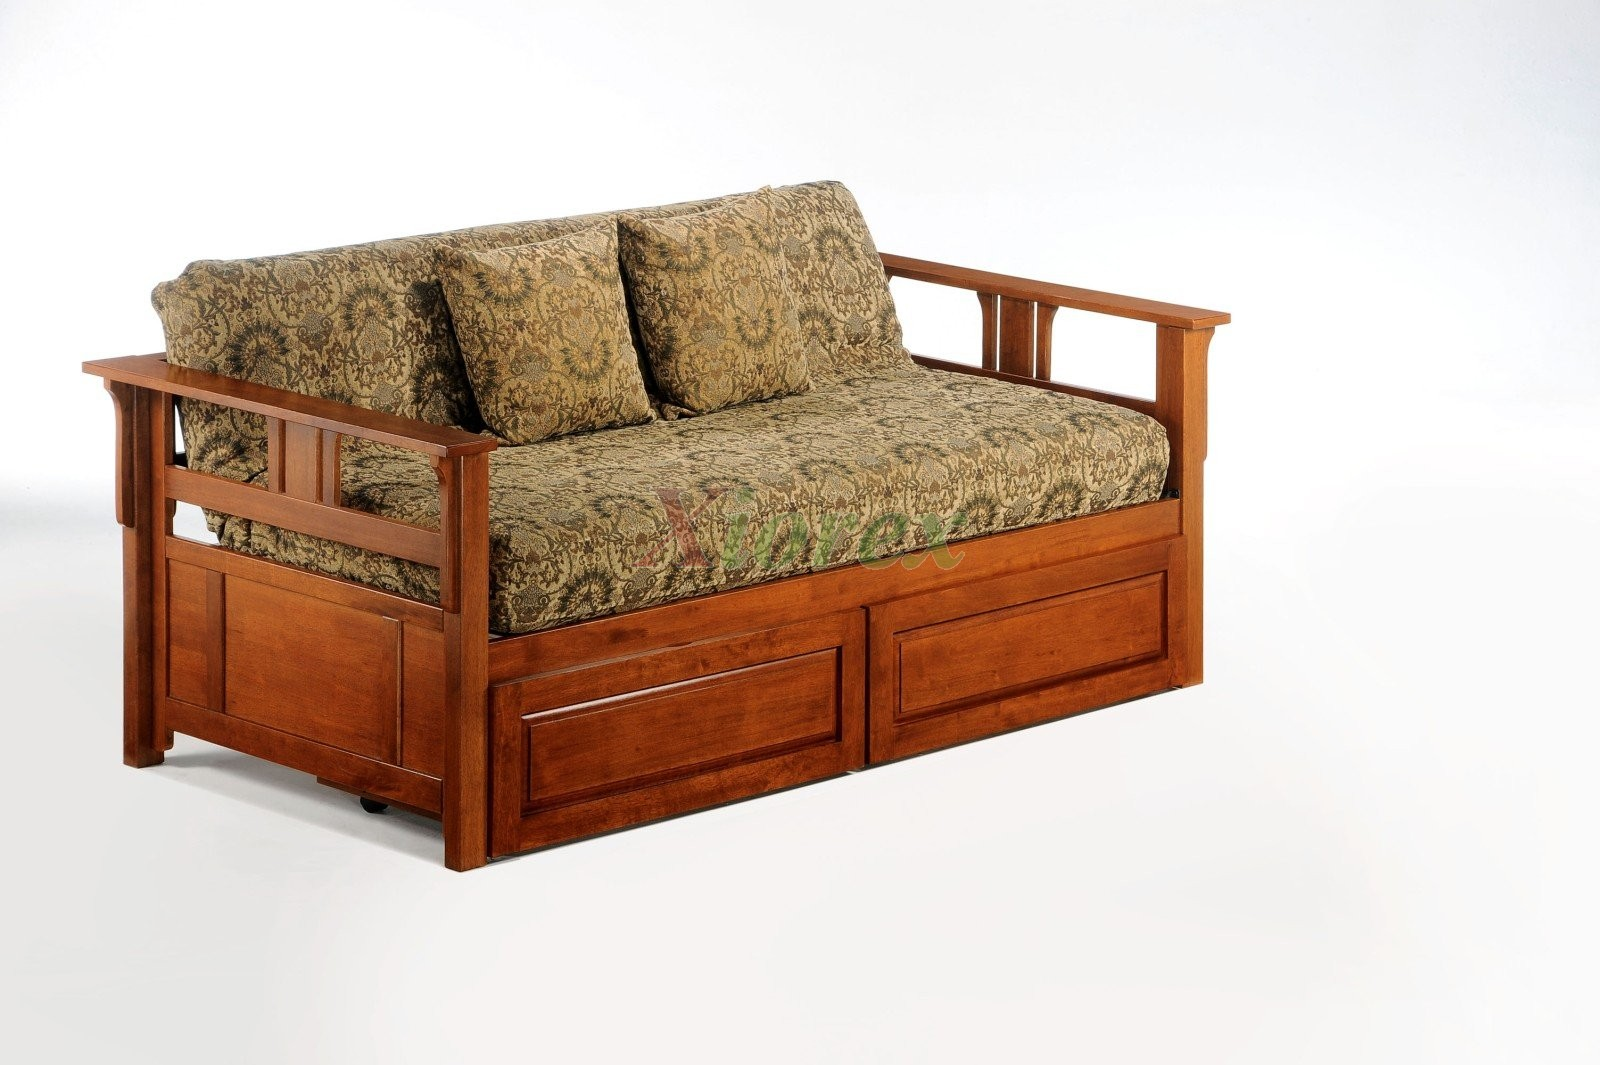 Teddy Roosevelt Guest Bed Daybed With Drawers Cherry By Night And Day Xiorex